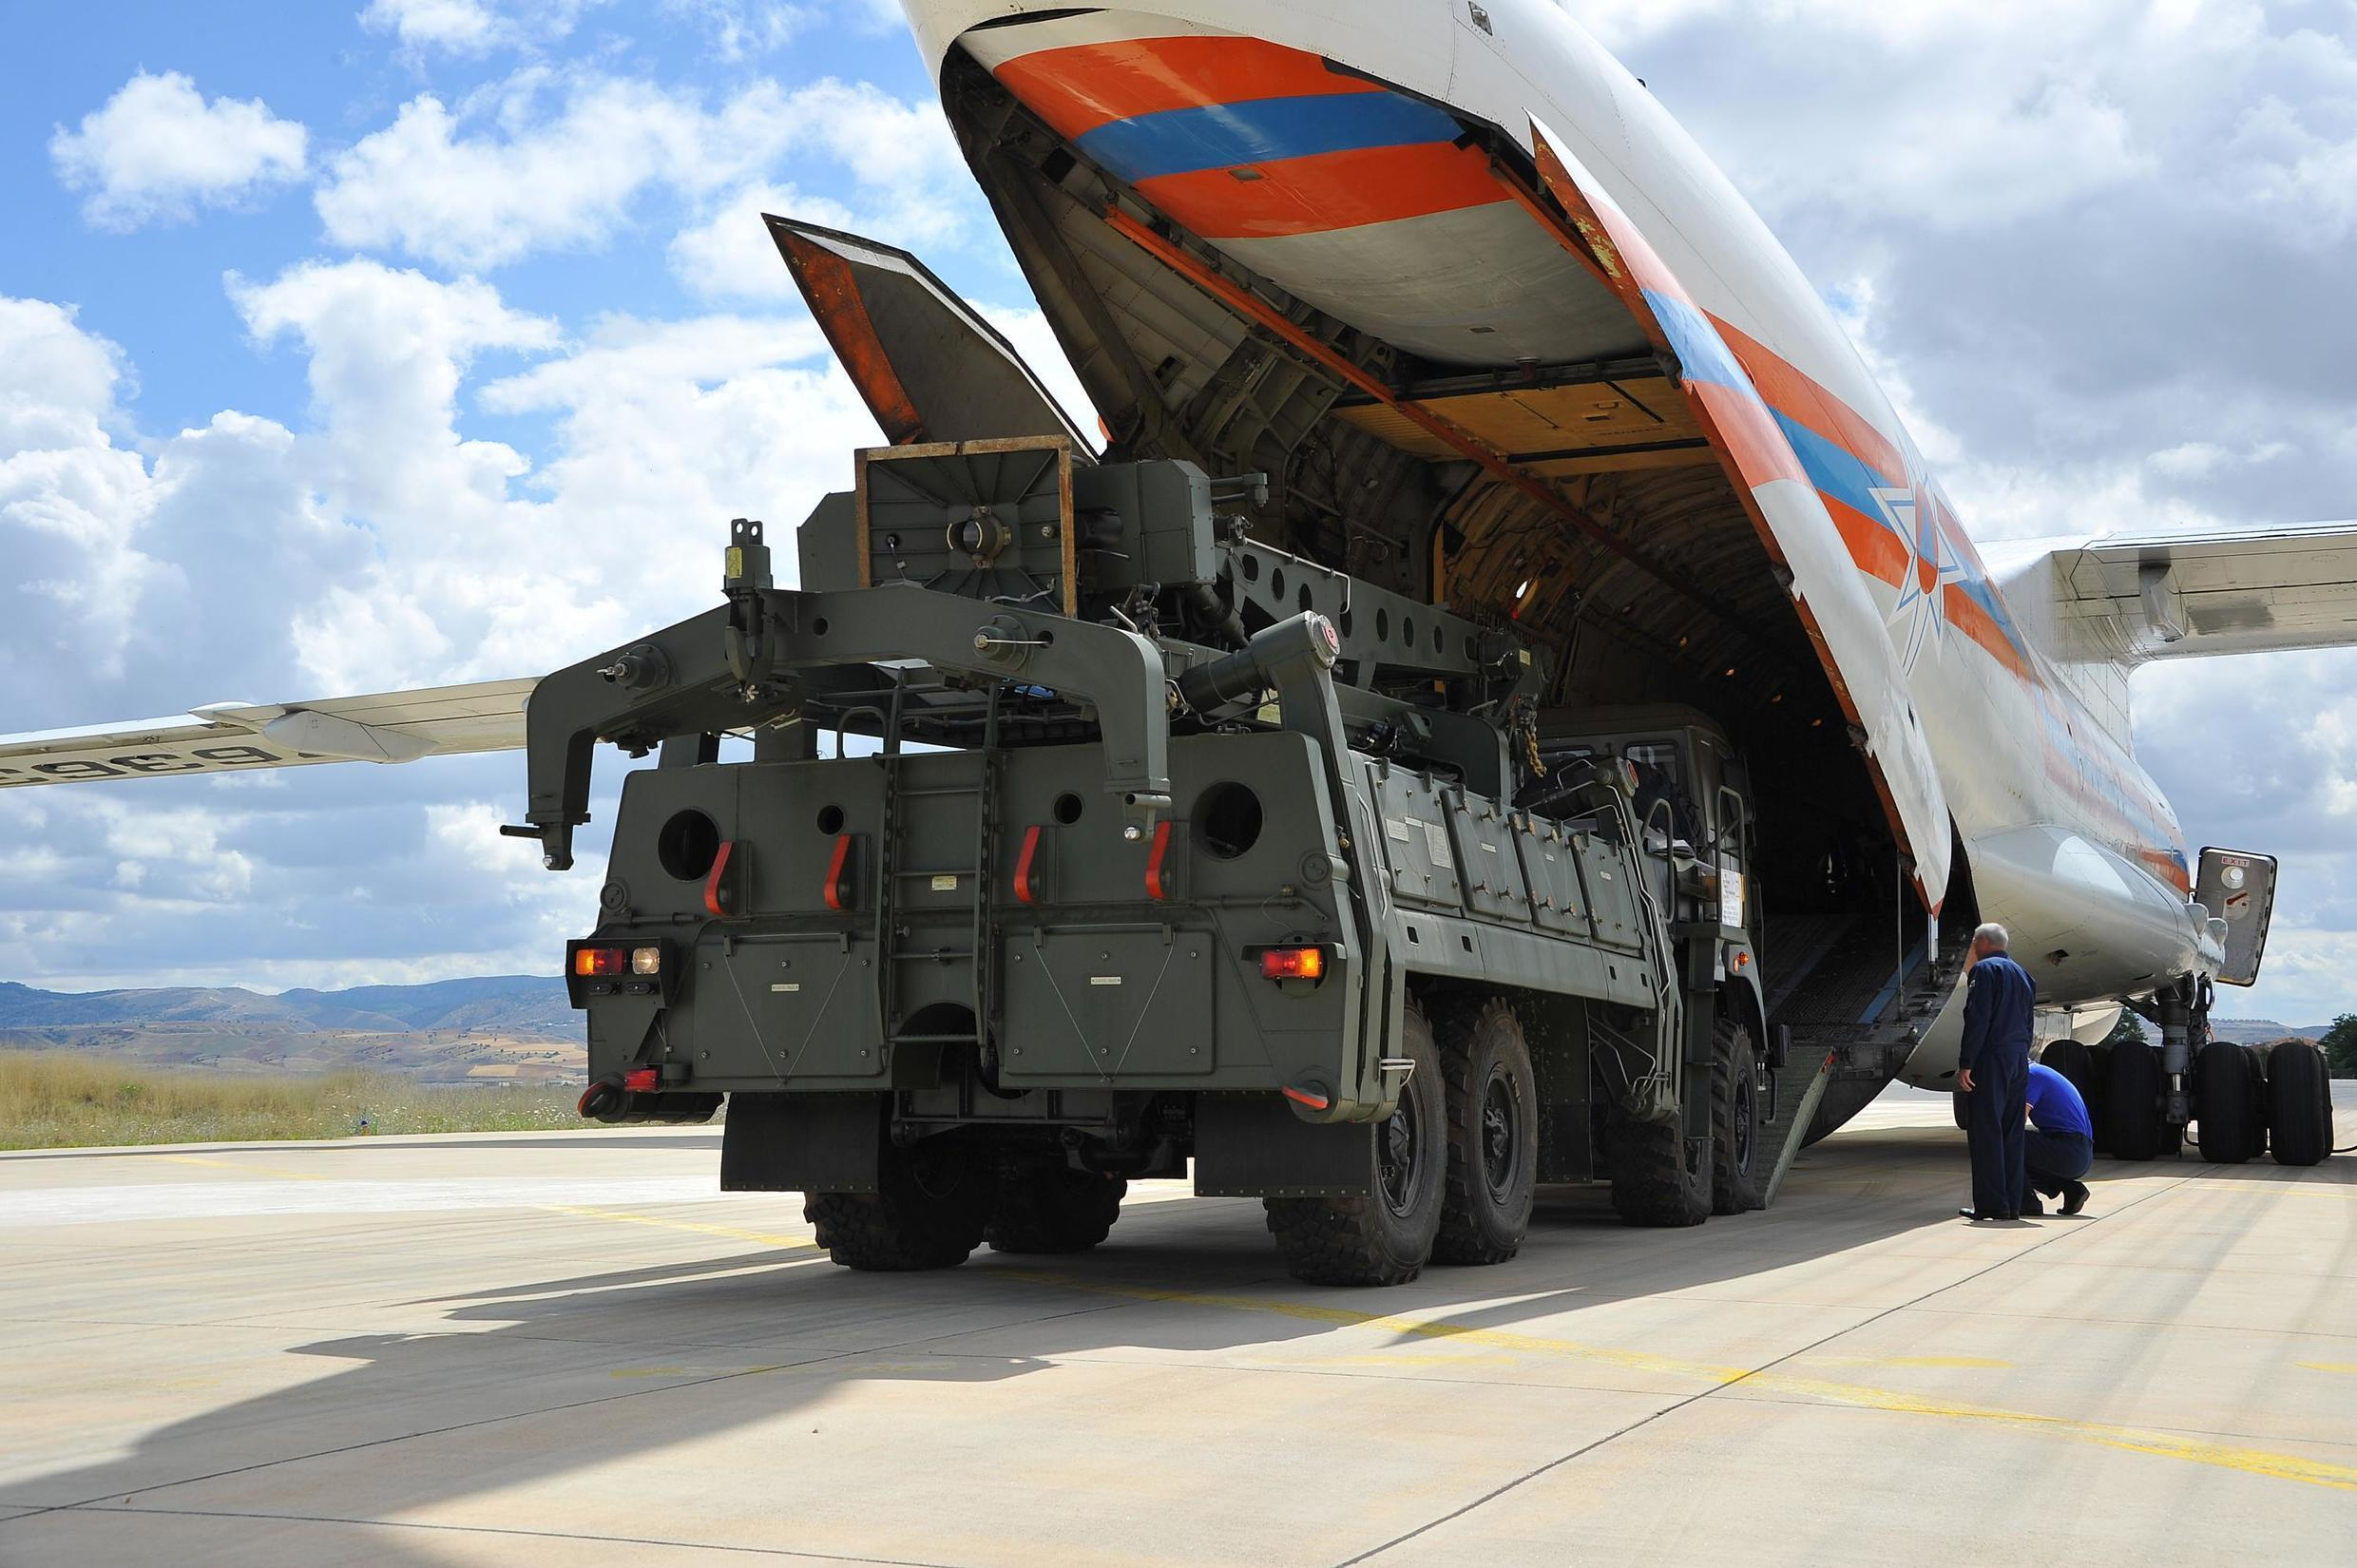 Russia began delivering the first S-400 missiles to Turkey on 12 July